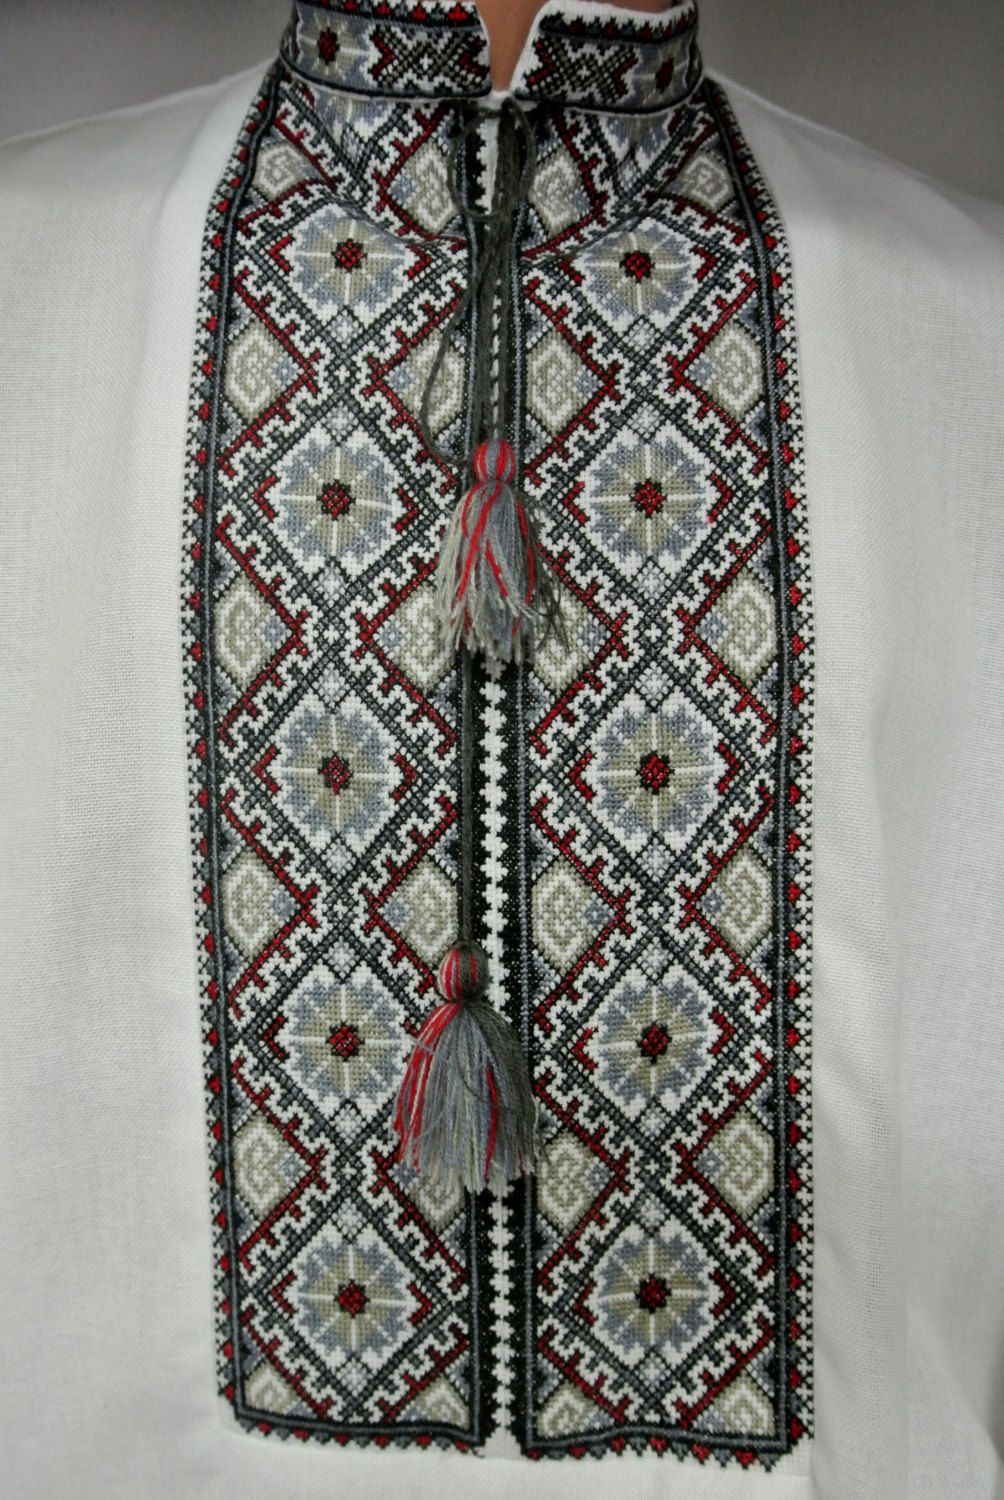 Handmade embroidered dress shirt vyshyvanka for men. With traditional  patterns of Ukrainian embroidery. PLEASE dbb43aa2d